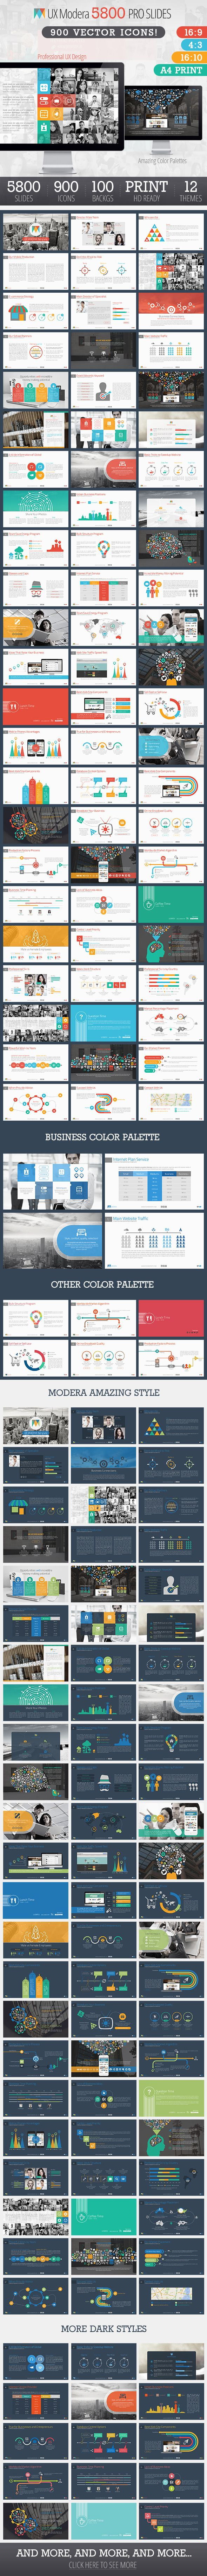 UX Modera Presentation Template PowerPoint Template / Theme / Presentation / Slides / Background / Power Point #powerpoint #template #theme